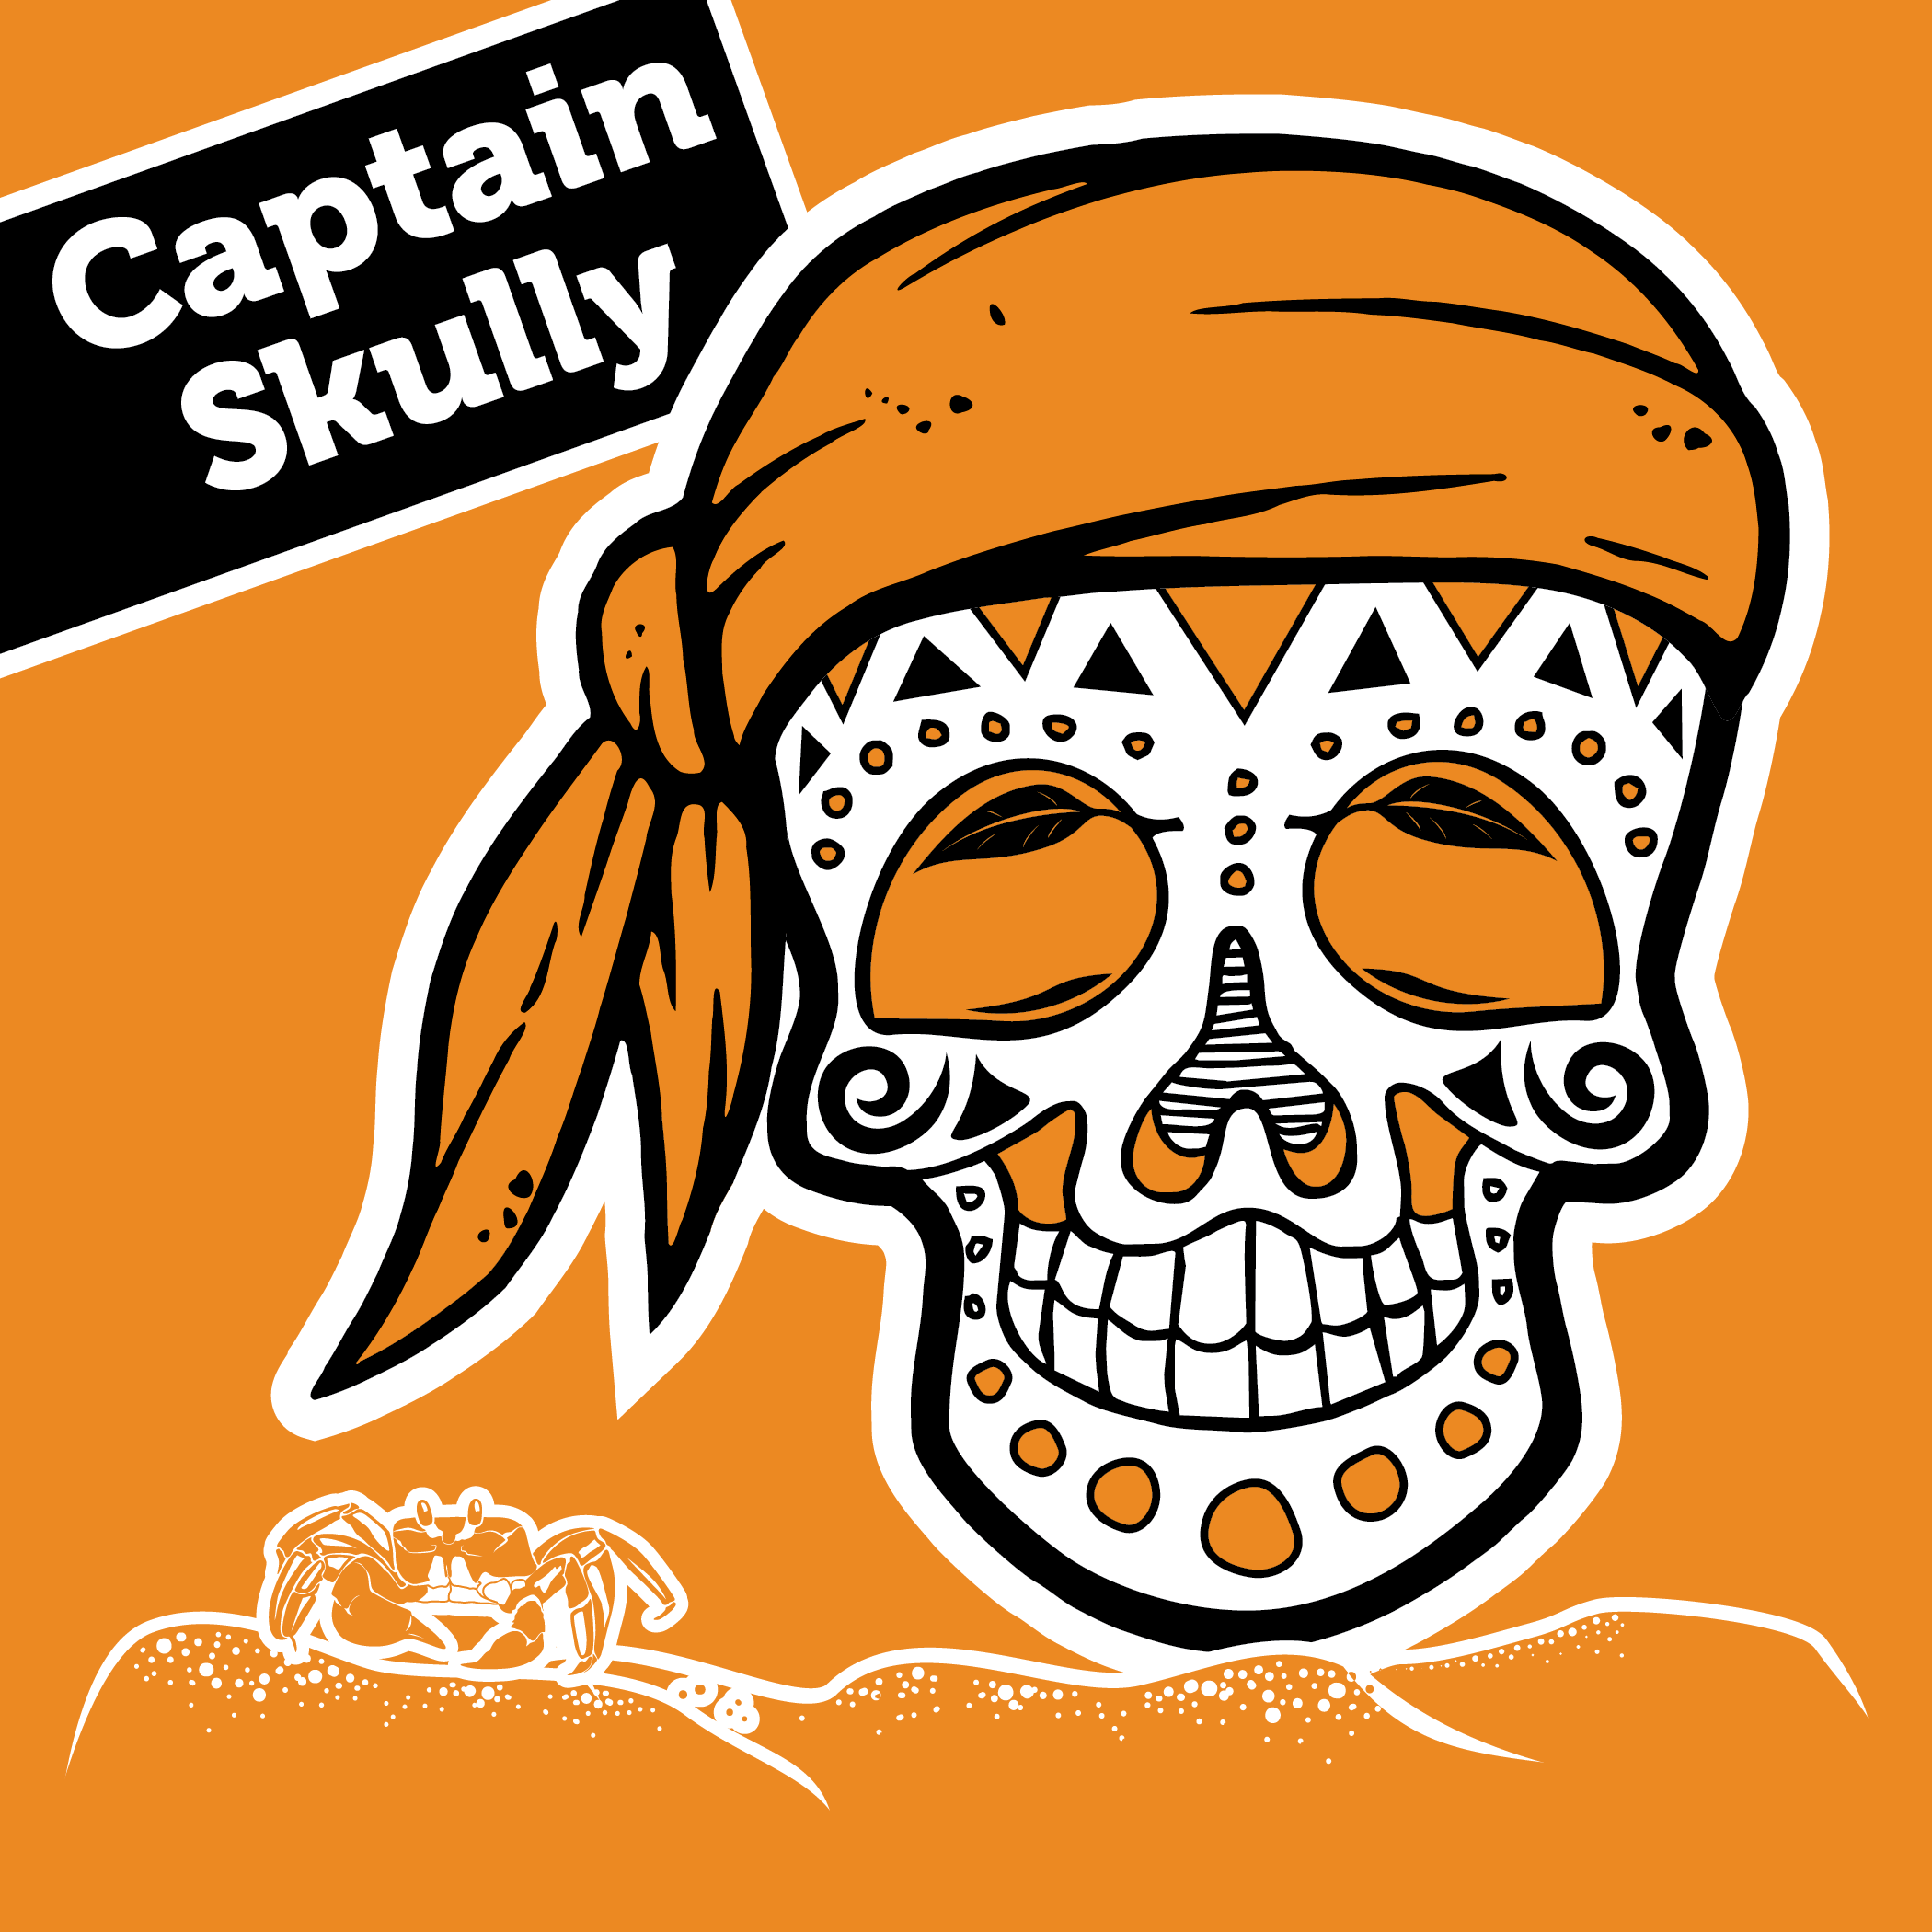 Captain Skully